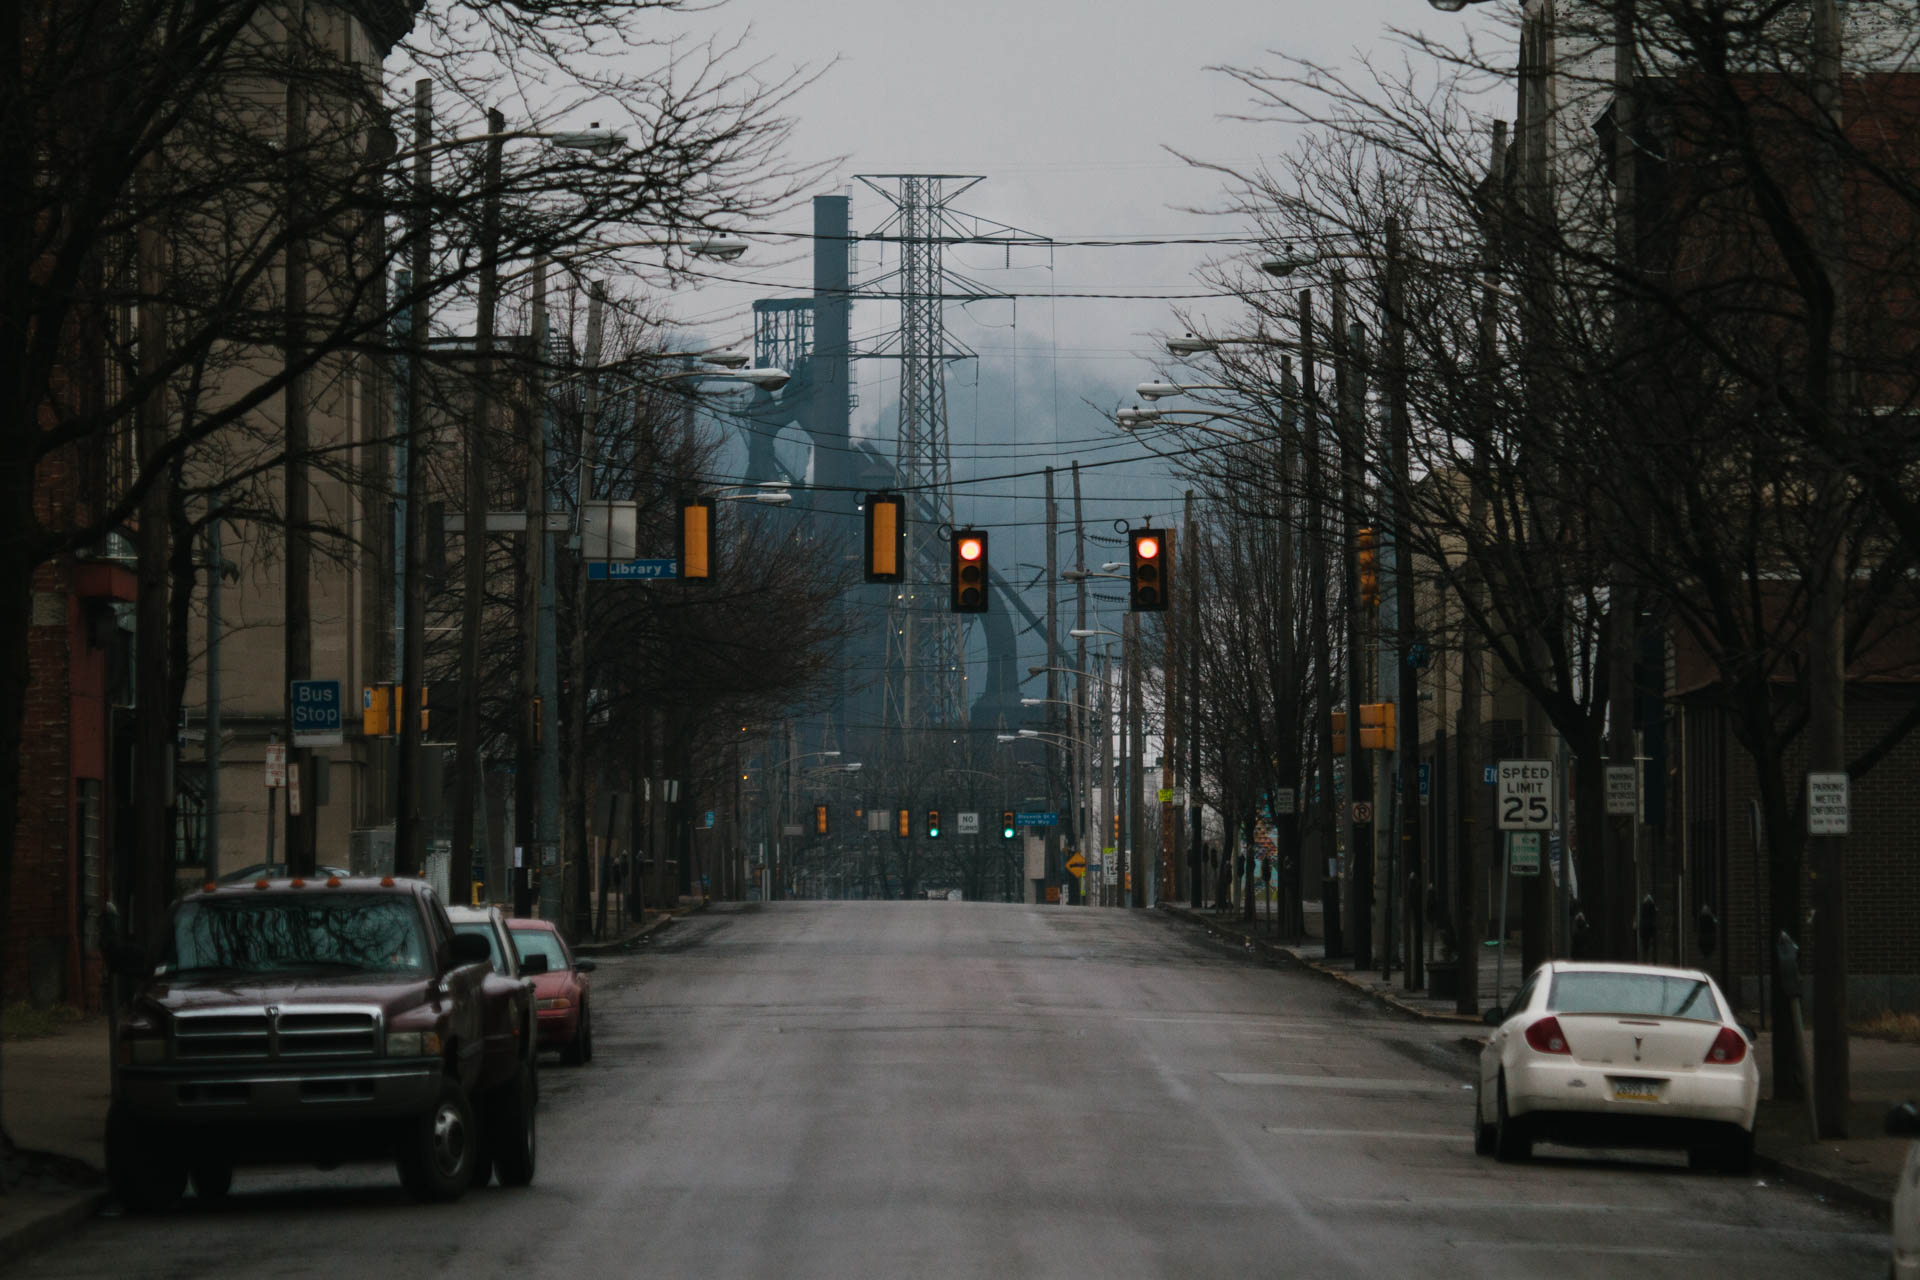 braddock-pa-looking-down-street-steel-mill